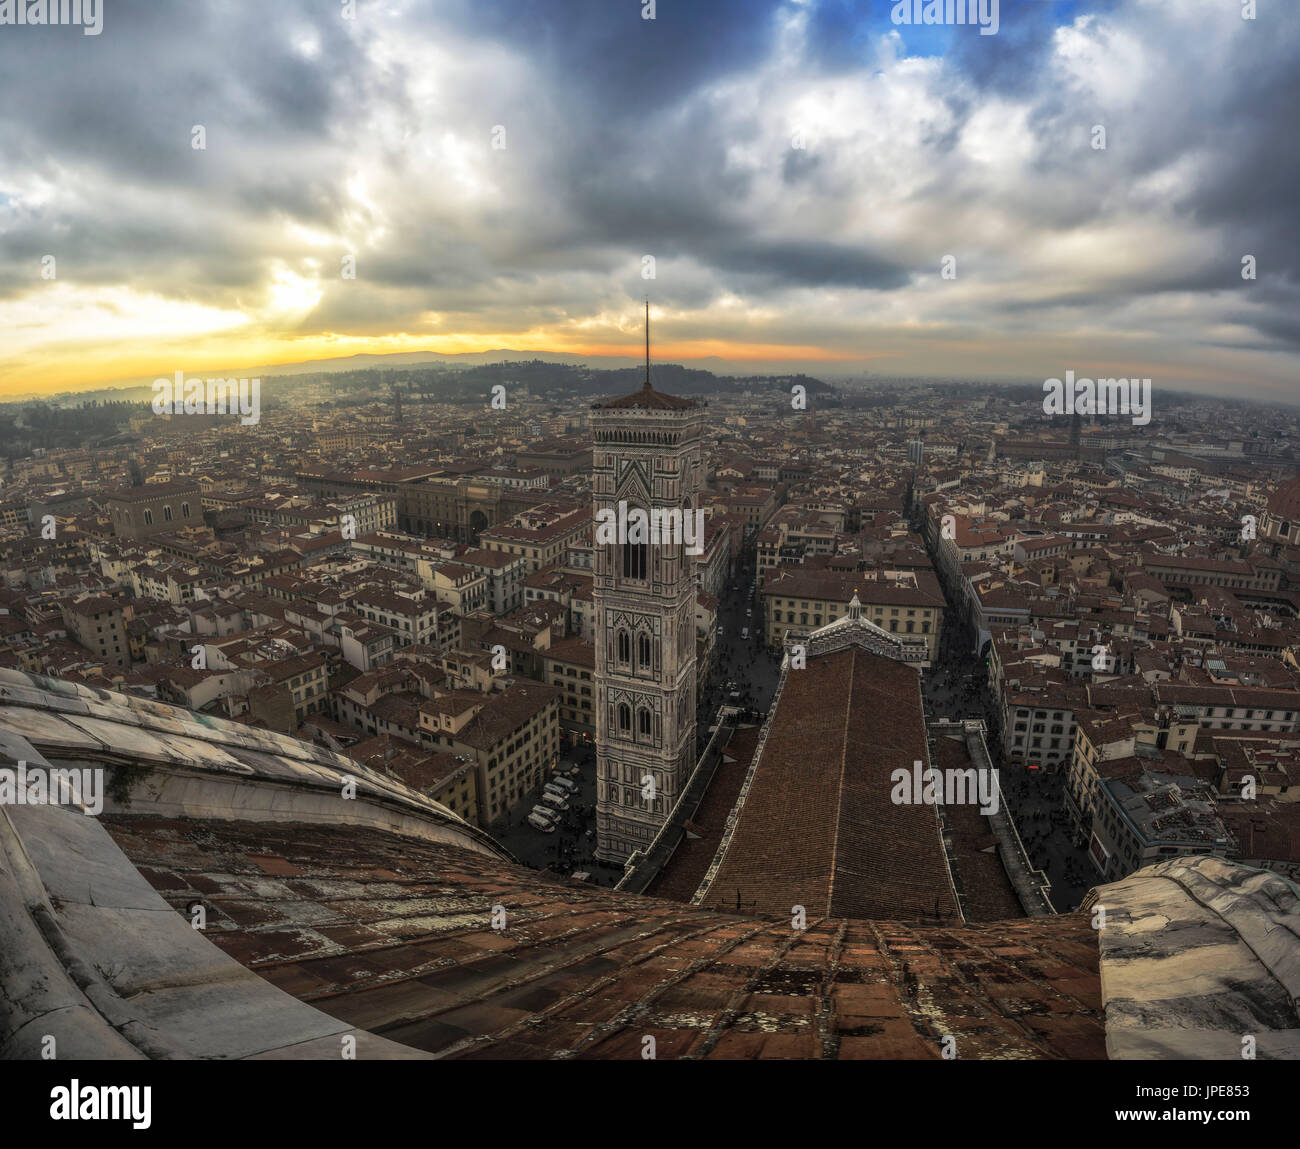 Florence, Tuscany, Italy. Sunset from the top of Cupola del Brunelleschi and Santa Maria del Fiore with Giotto tower. - Stock Image